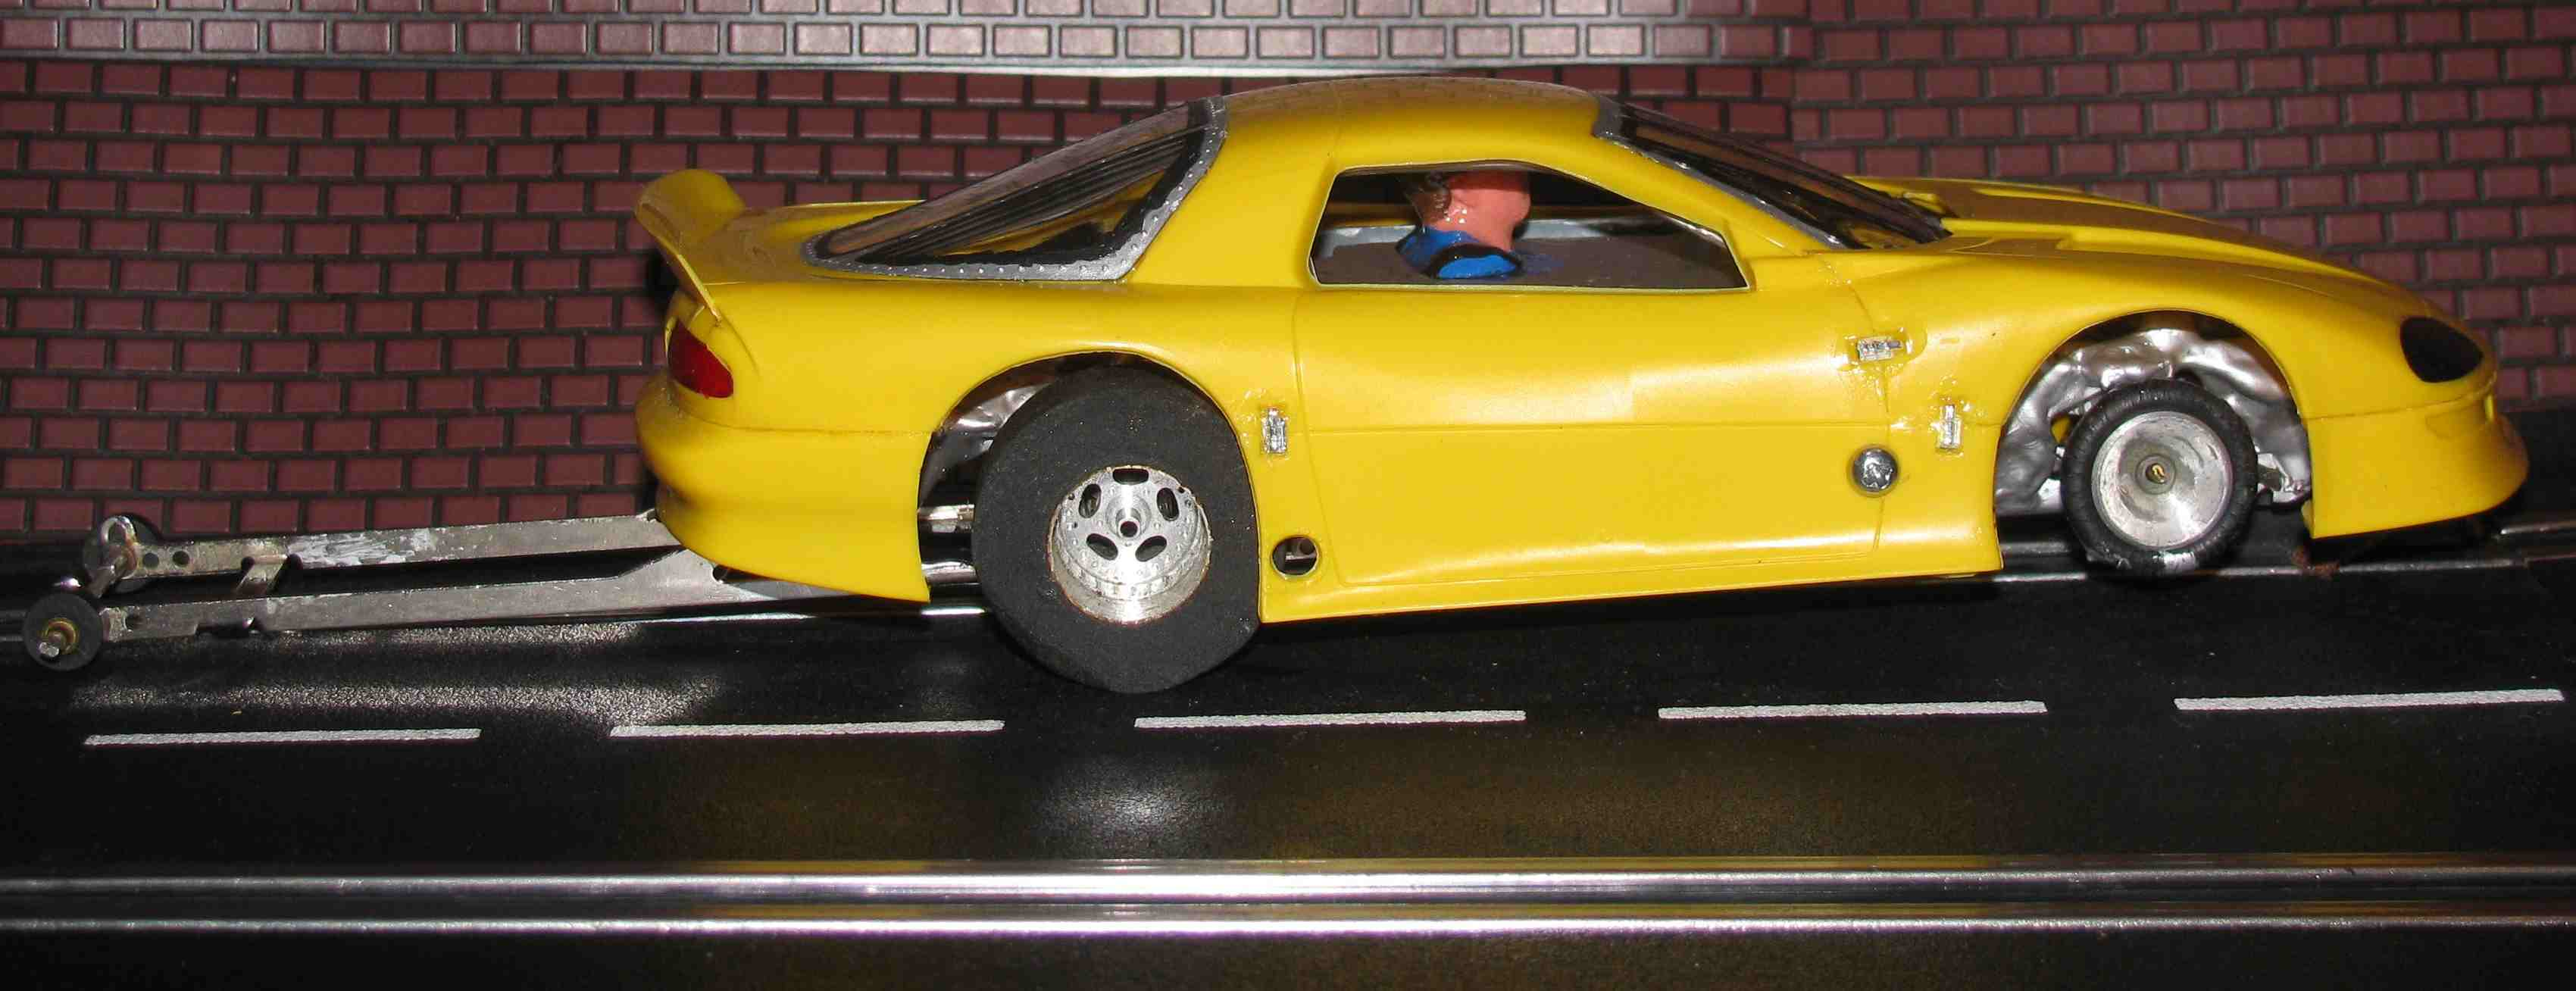 *** SOLD *** Parma - Revell 1990's Chevy Camaro Dragster